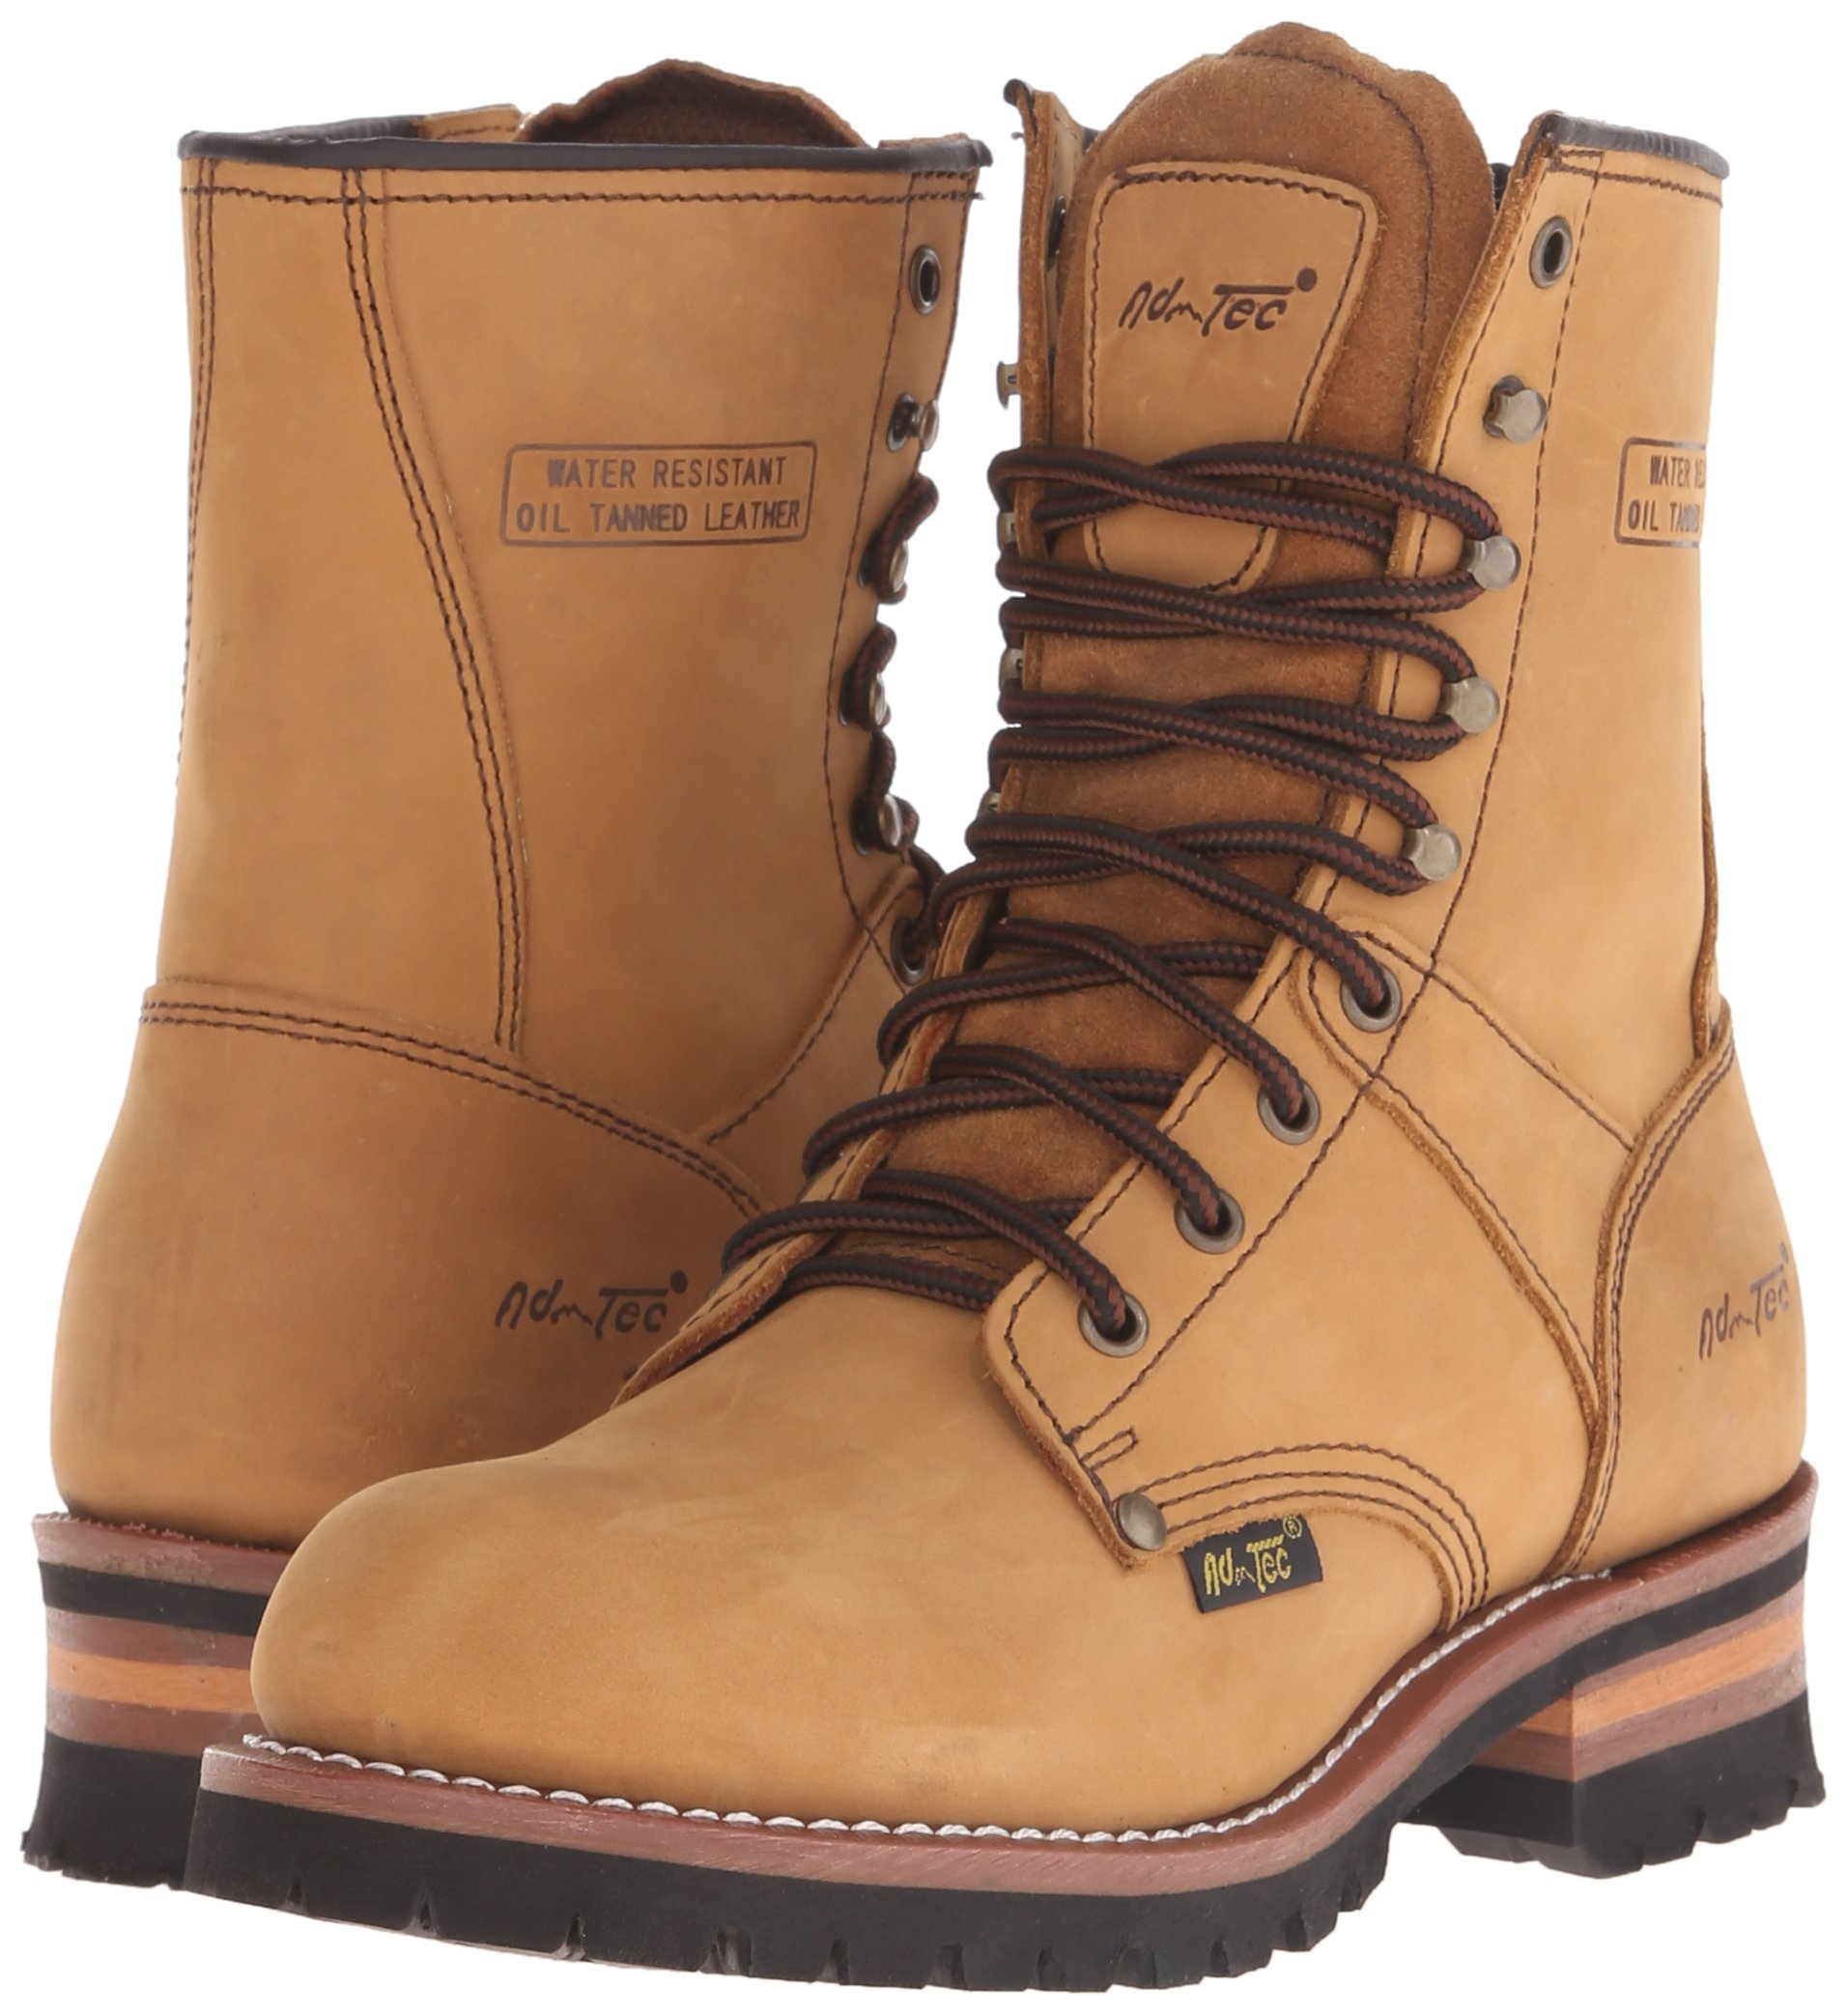 Adtec Men's 9 inch Logger Boot, Brown, 9 W US by Adtec (Image #6)